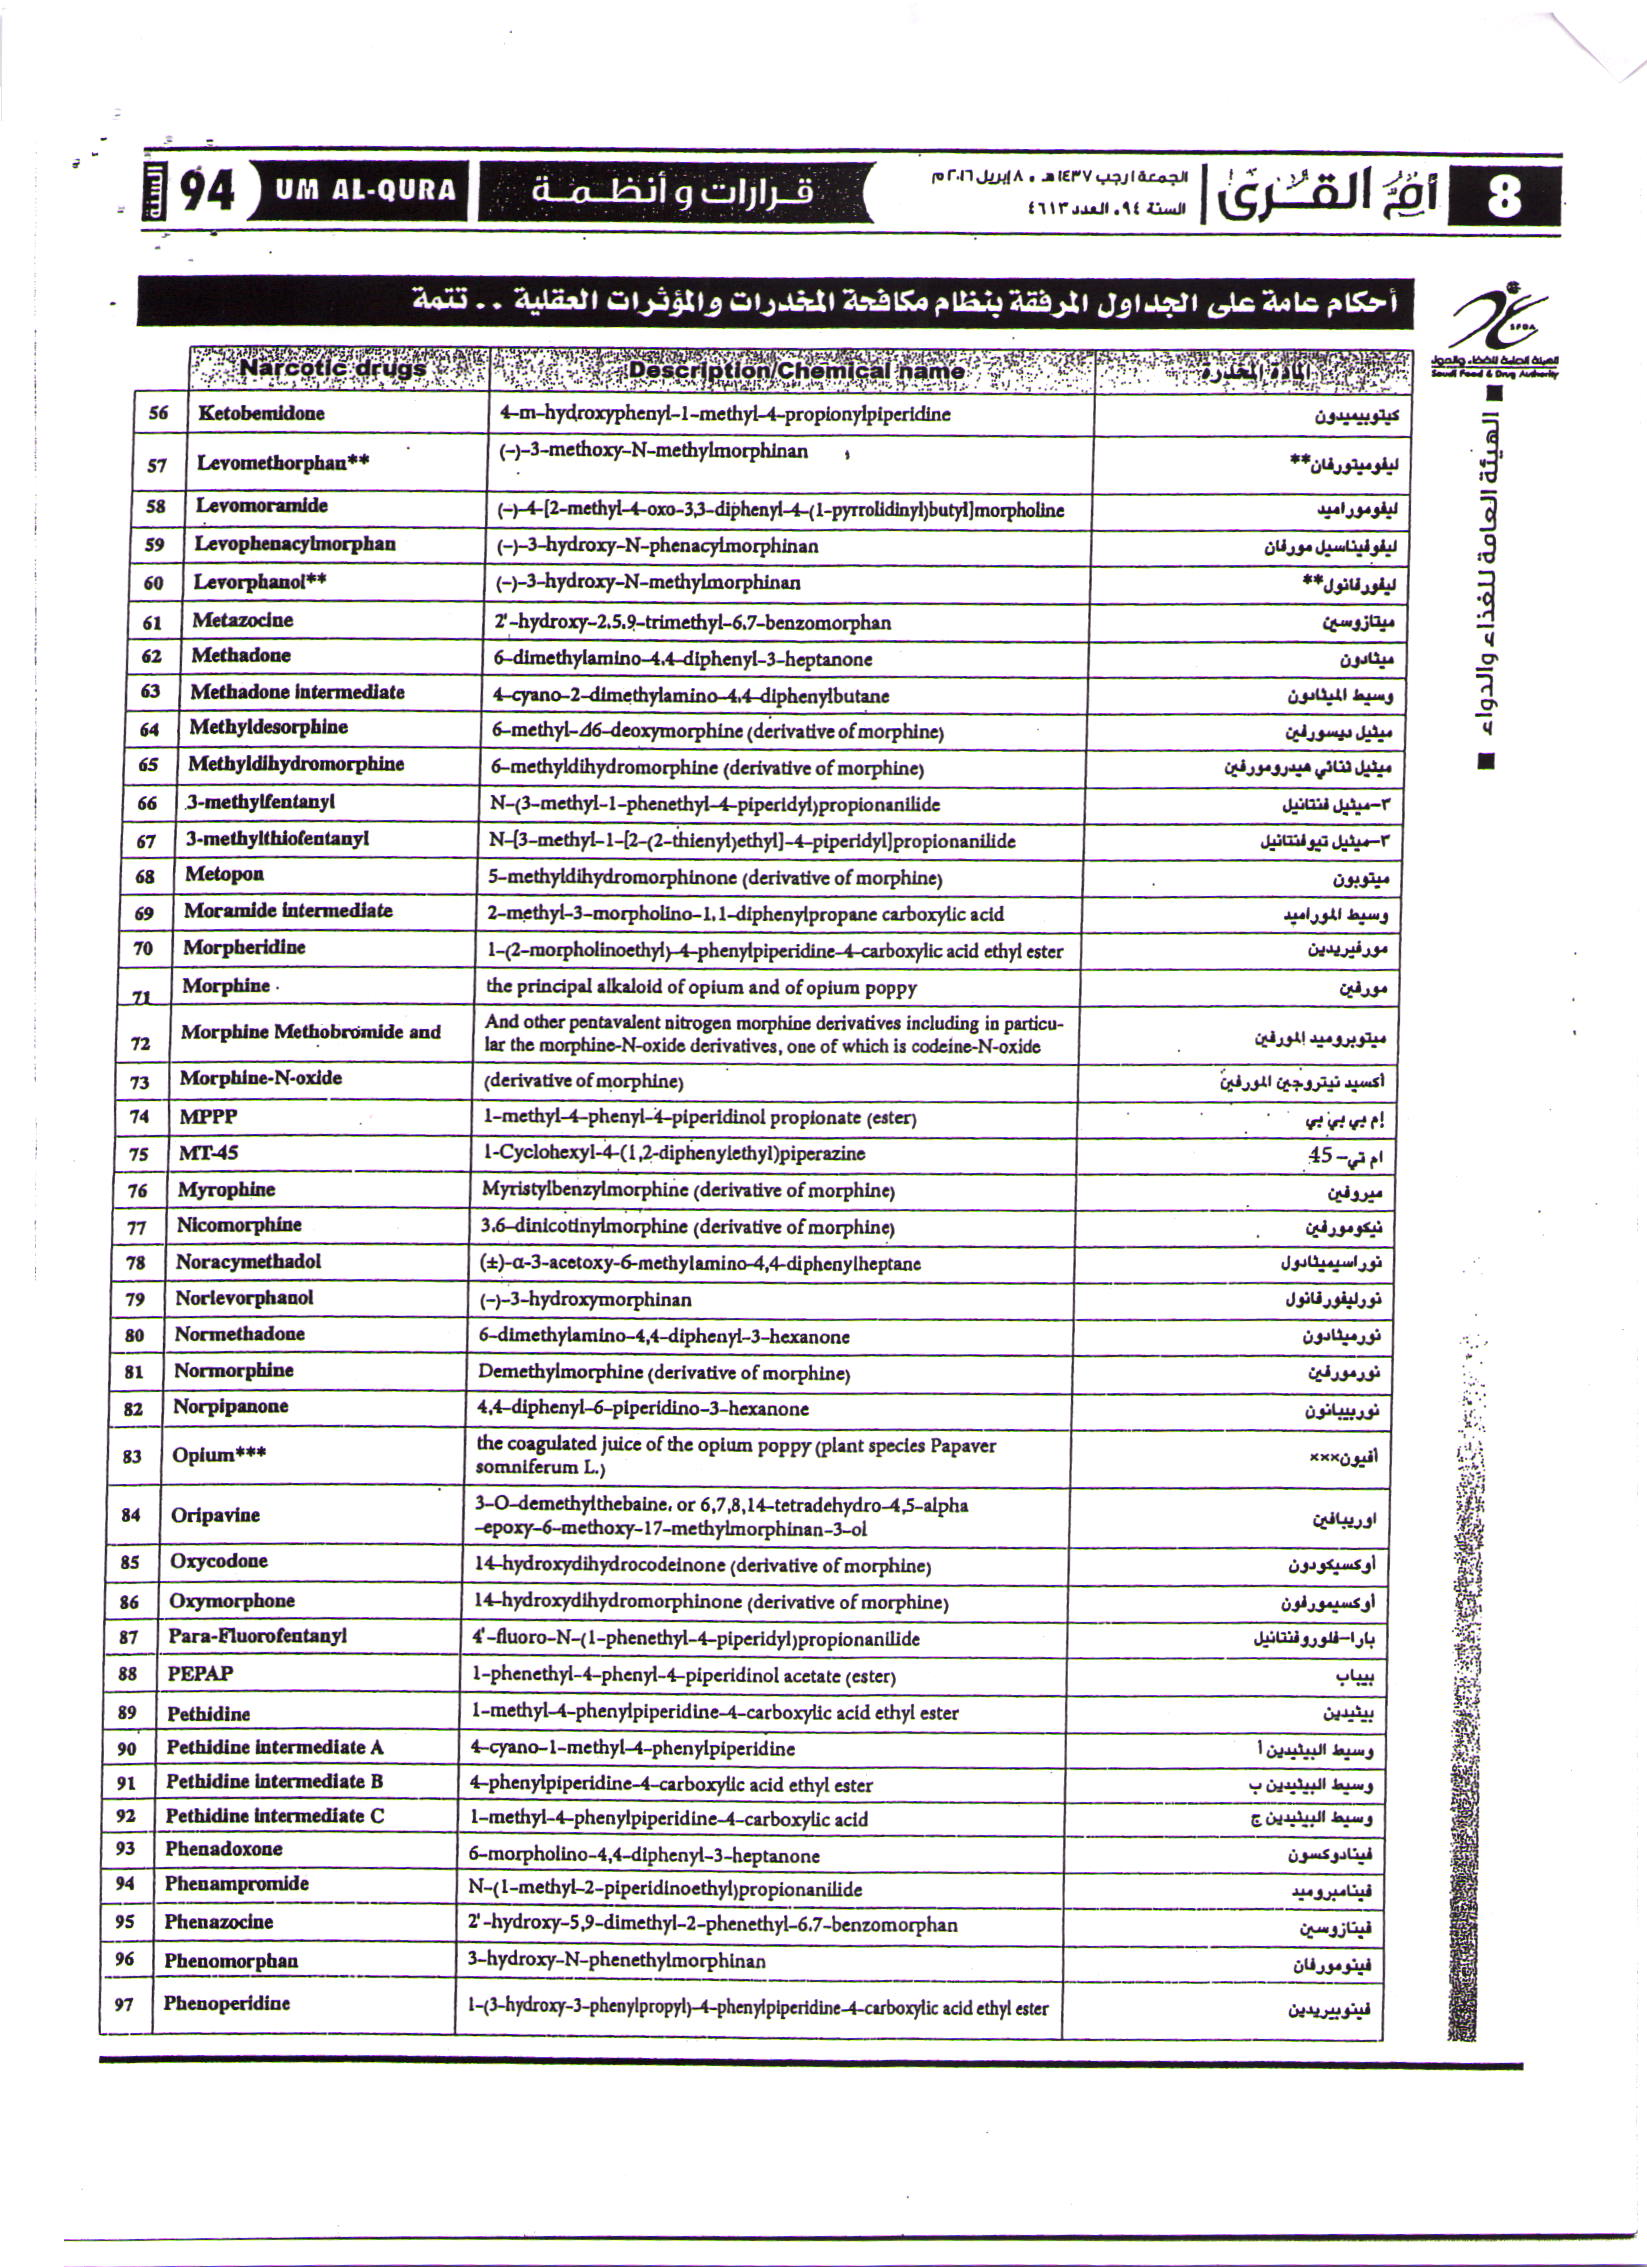 List of Banned Medicines/Drugs in the Kingdom of Saudi